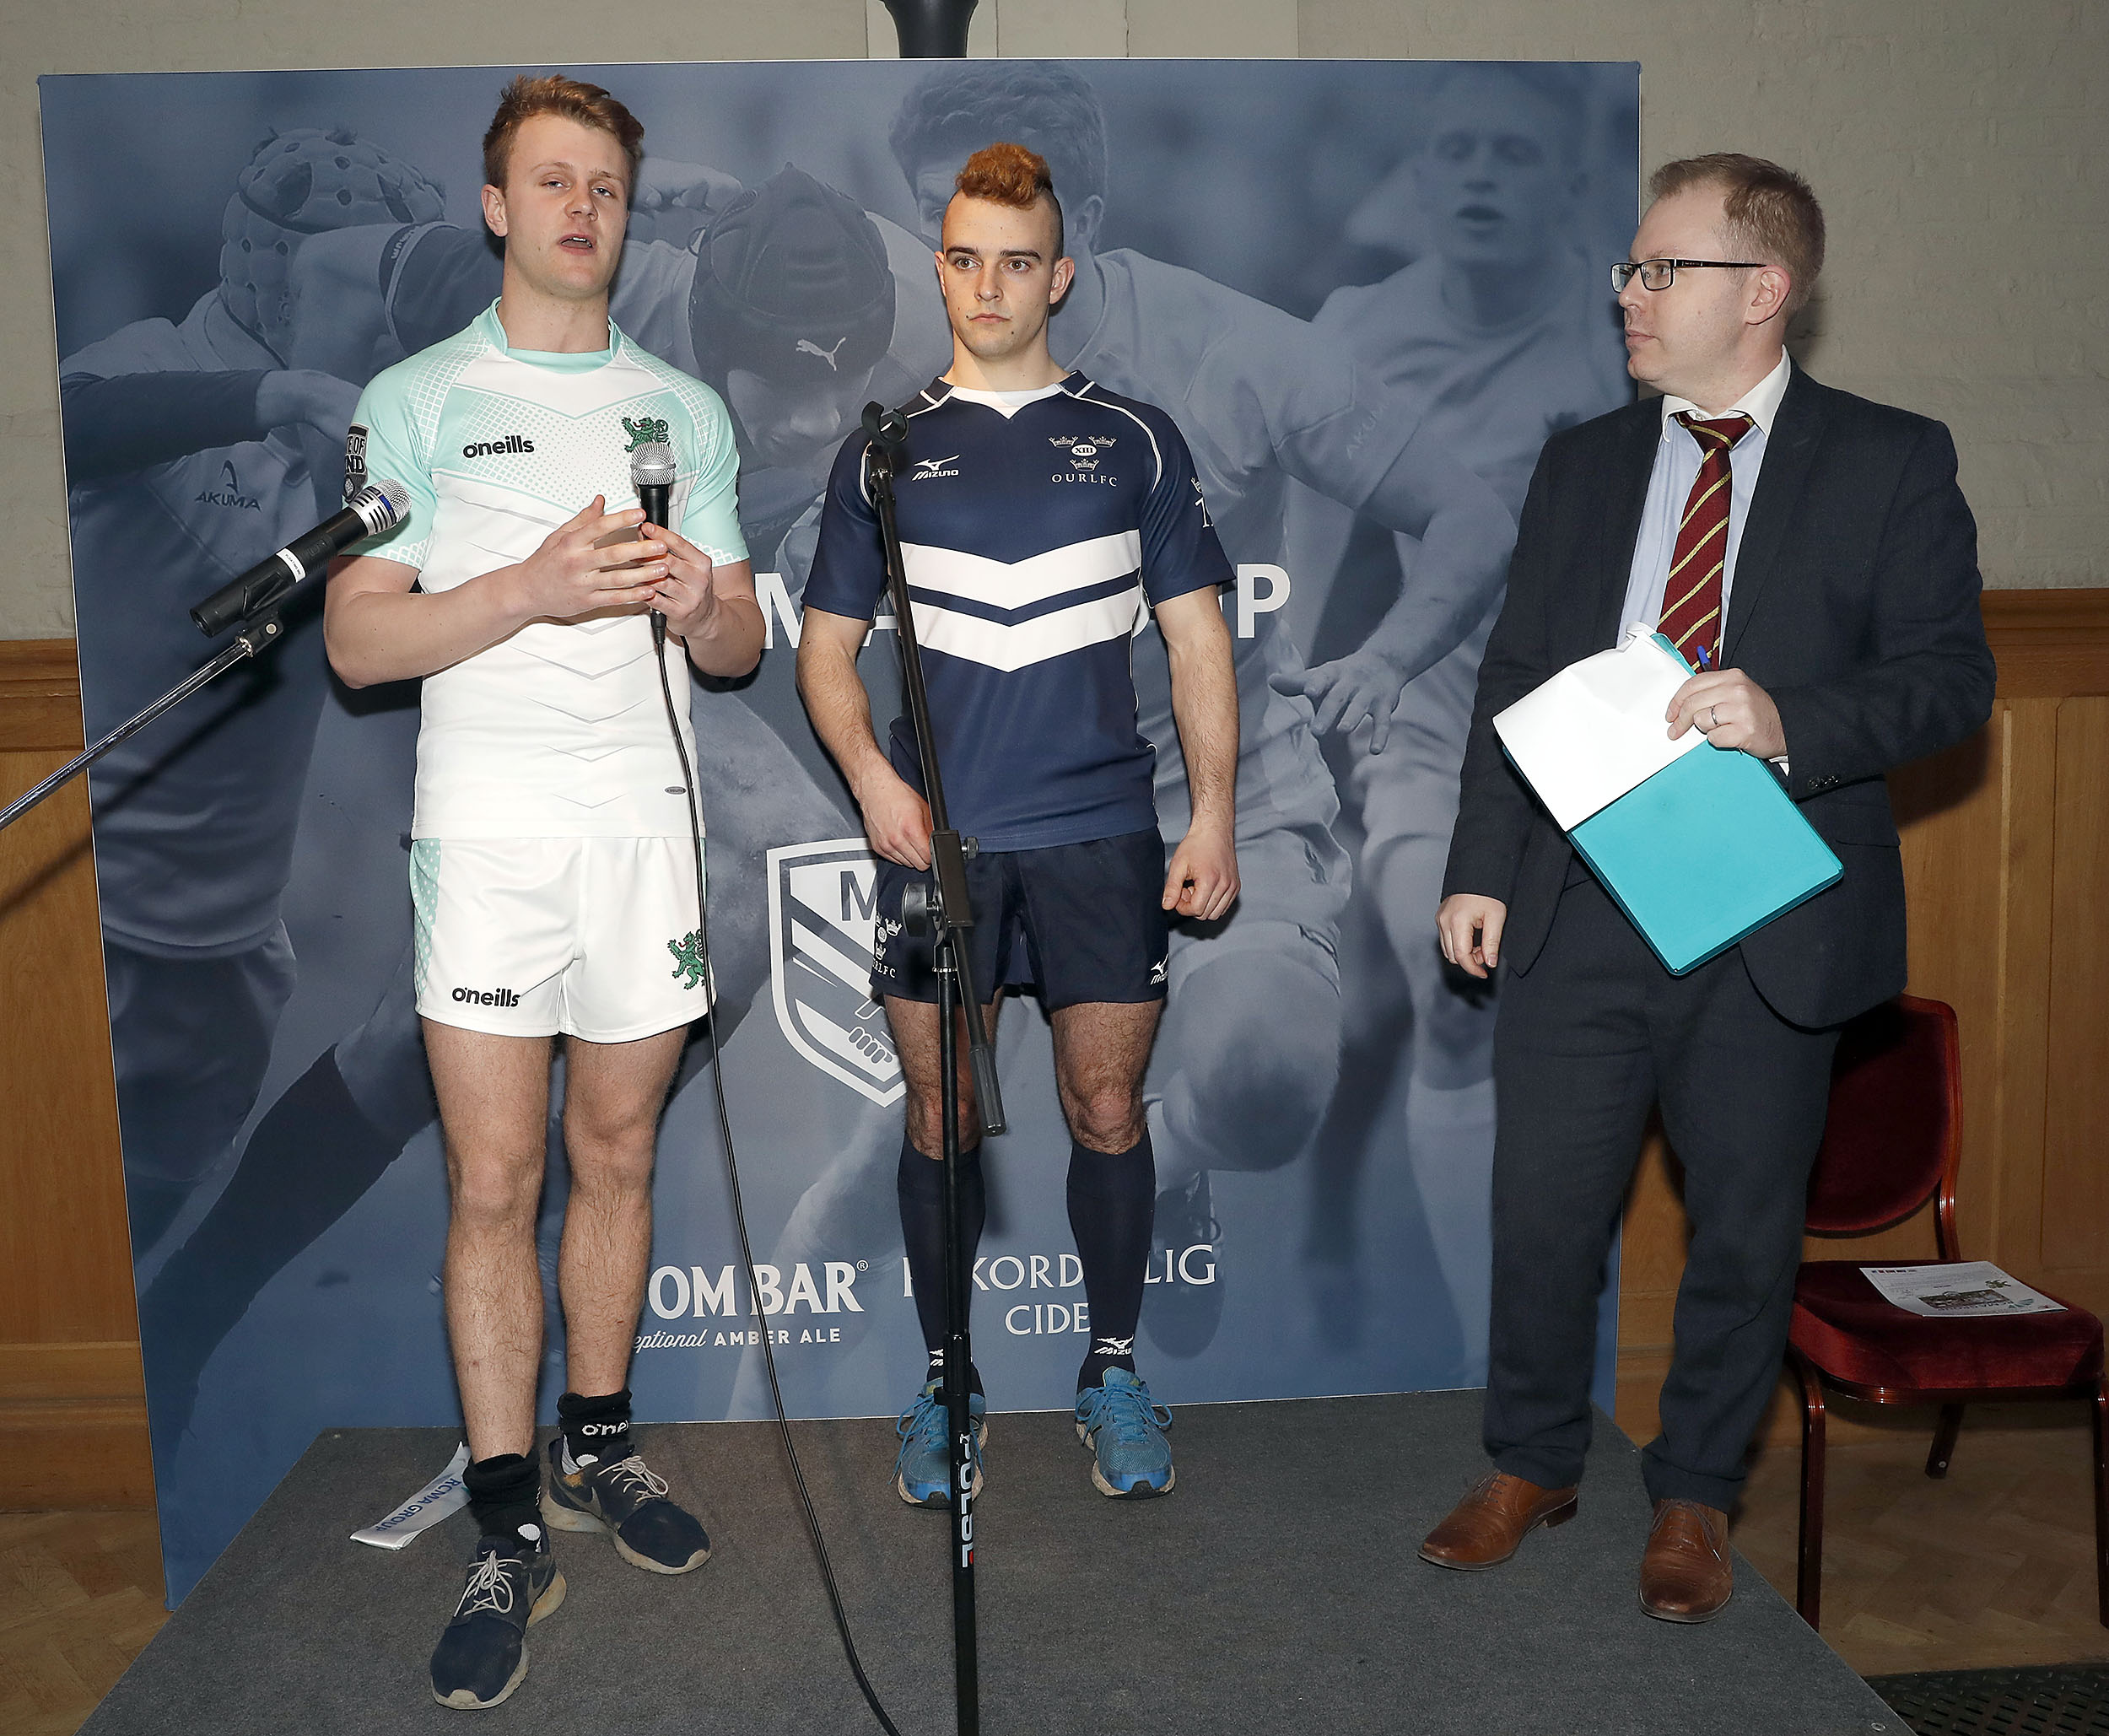 The two captains during the RCMA Varsity Rugby League game between Cambridge University and Oxford University at the HAC Ground, Moorgate, London on Fri Mar 9, 2018